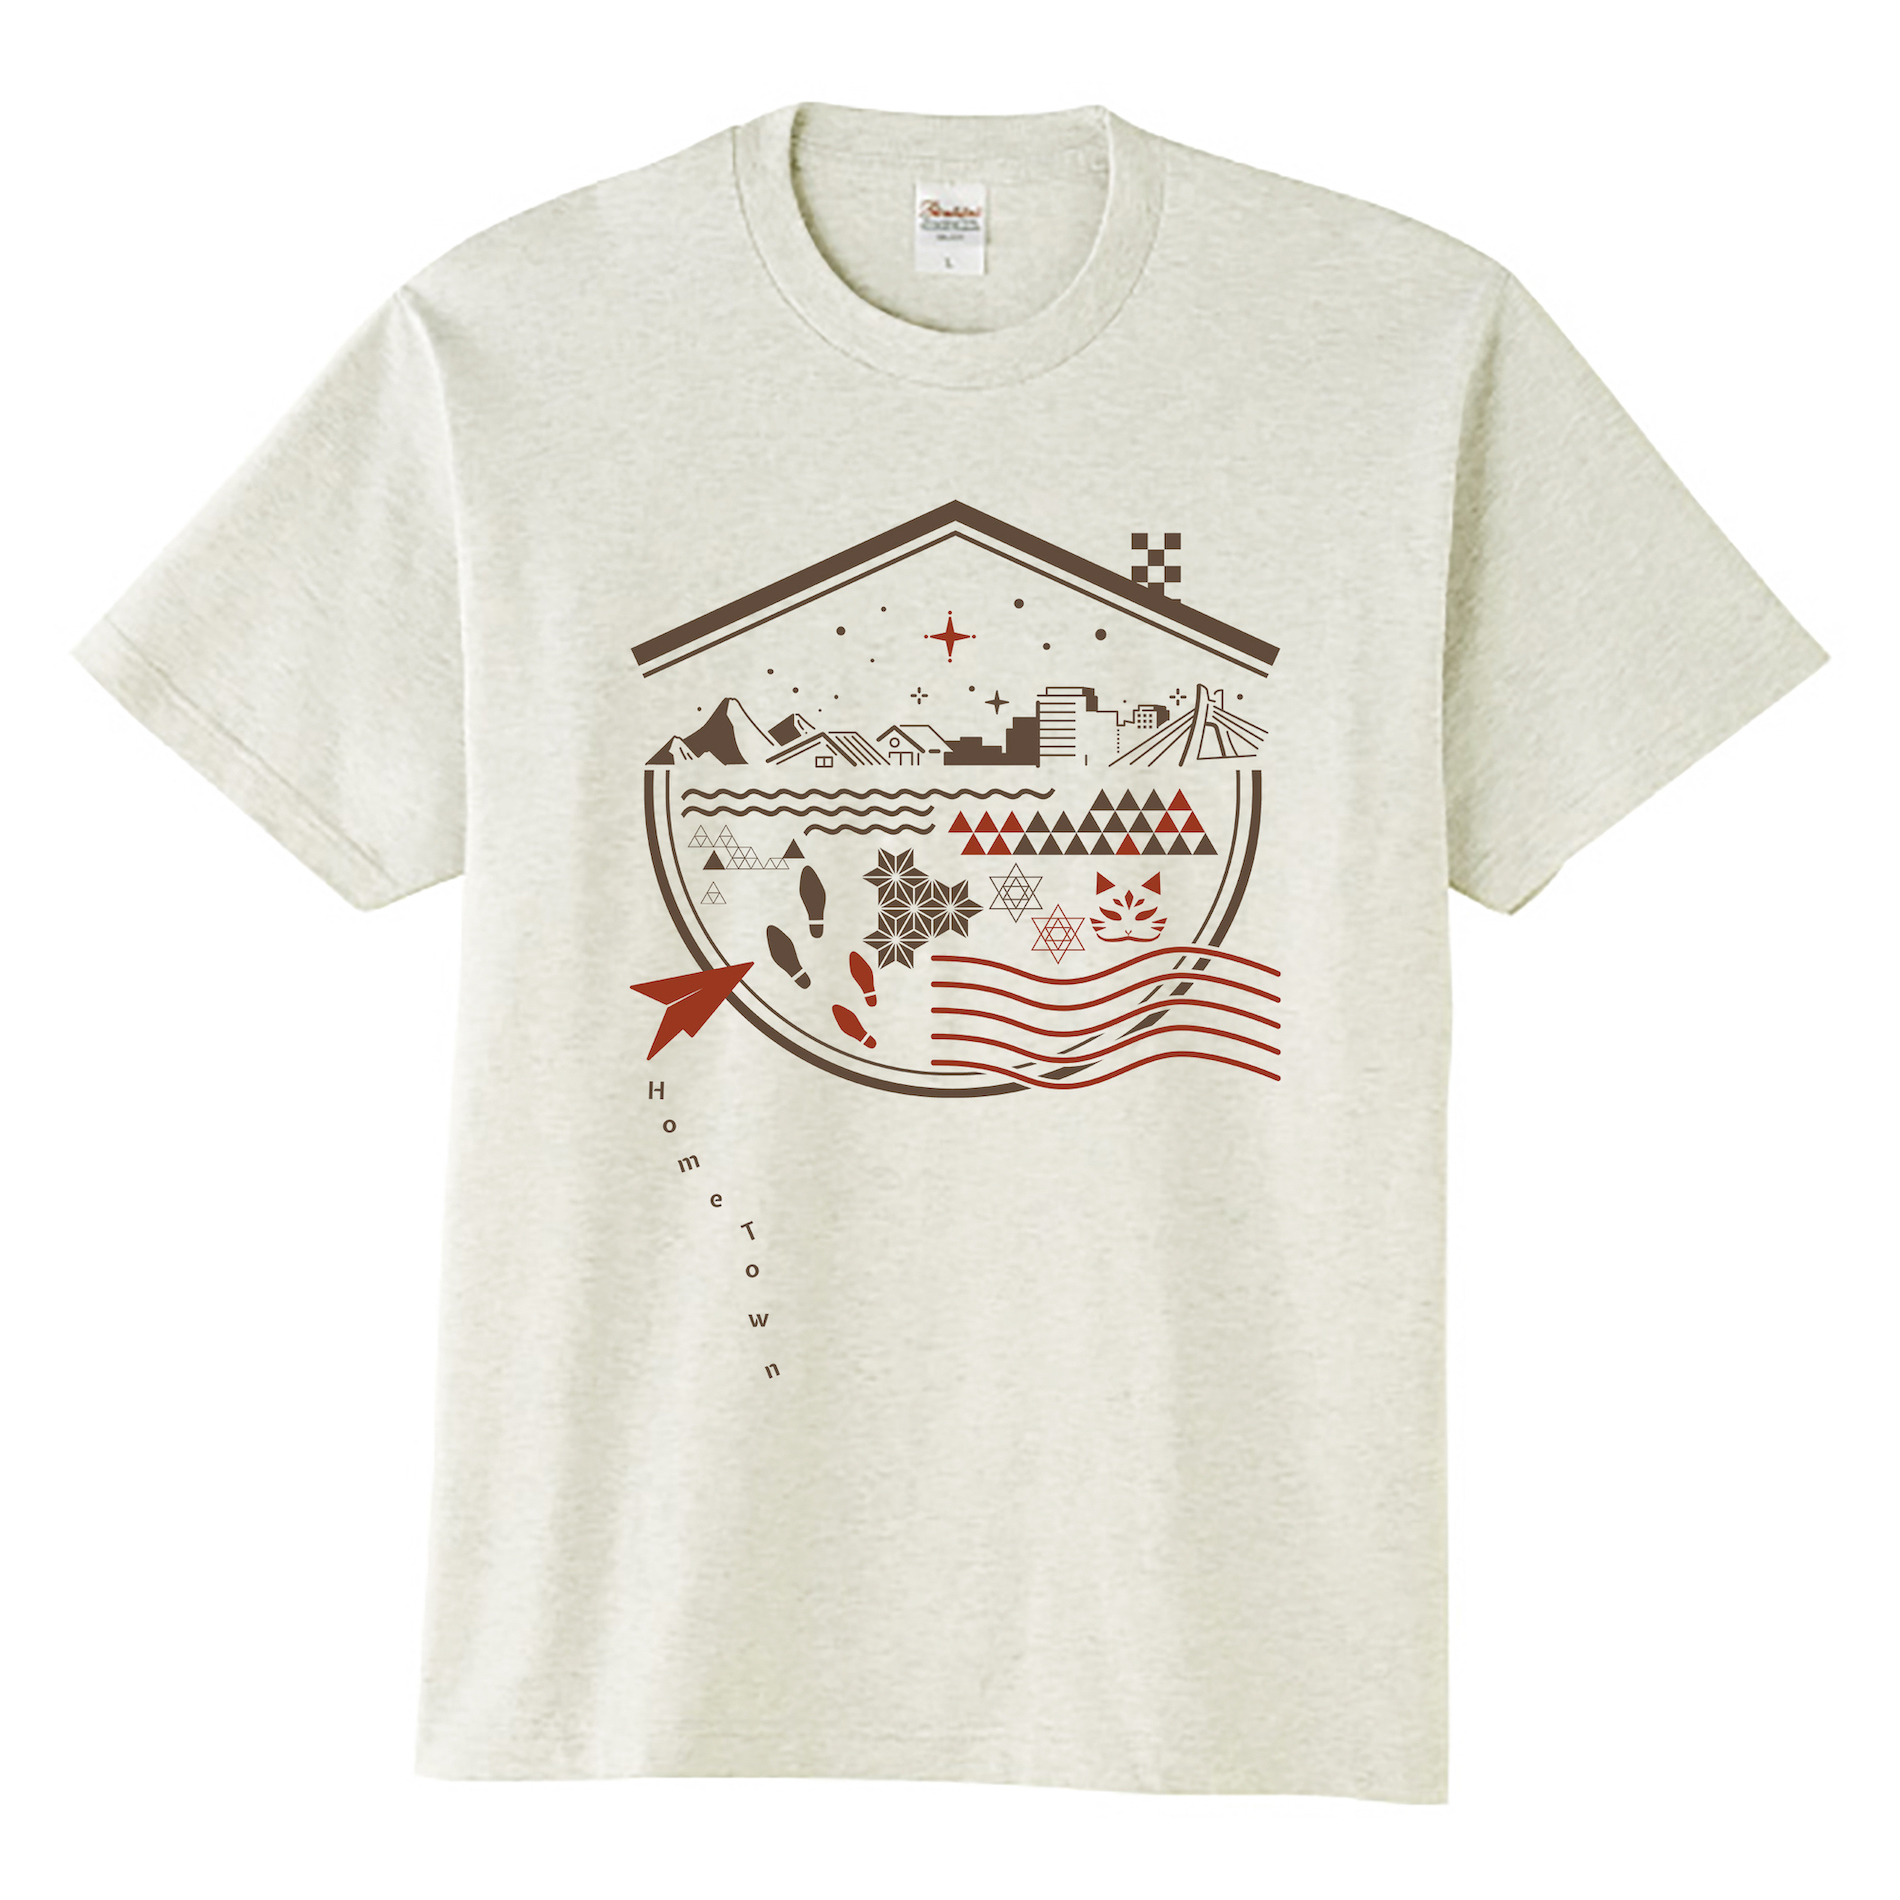 【Home Town会員限定】君住む街へ Tシャツ ~Home Town ver~(予約販売商品)